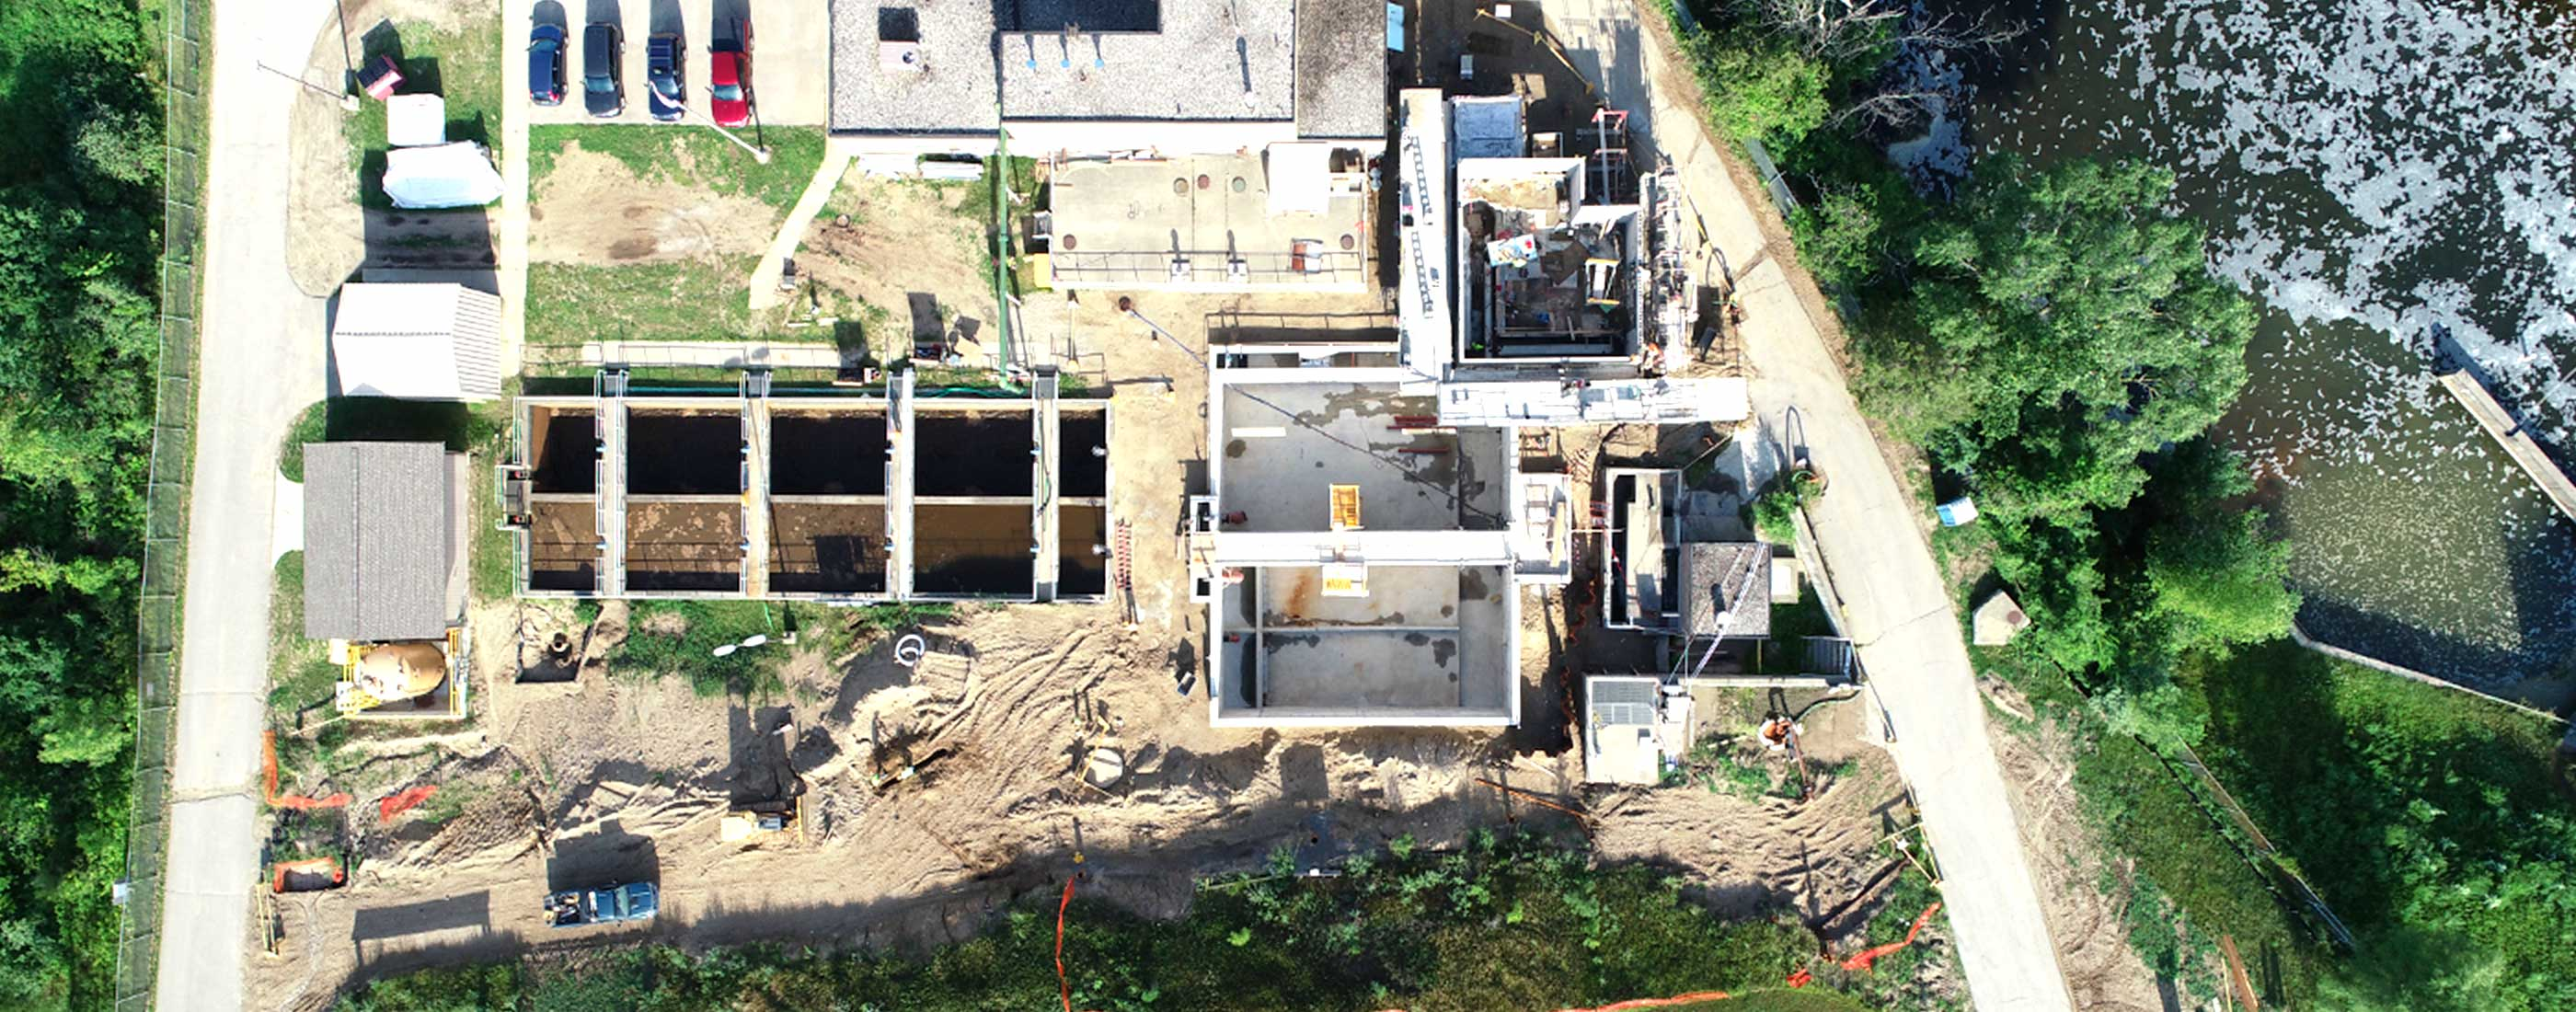 An aerial view of construction improvements to the Village of Milford's wastewater treatment plant.